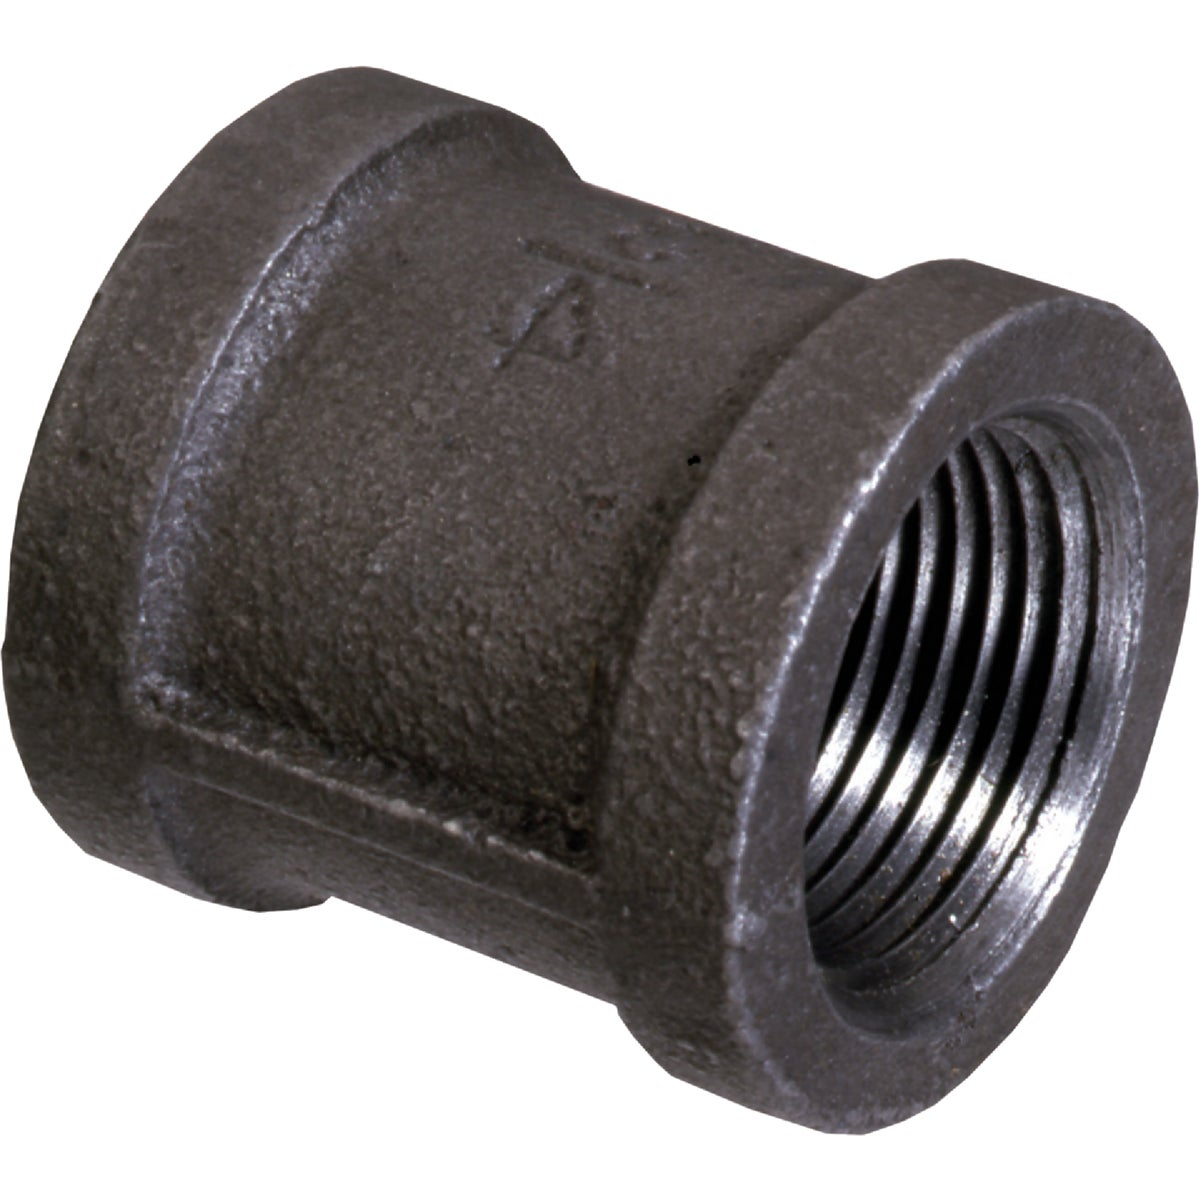 "1-1/2"" BLACK COUPLING - 521-207BG by Mueller B K"